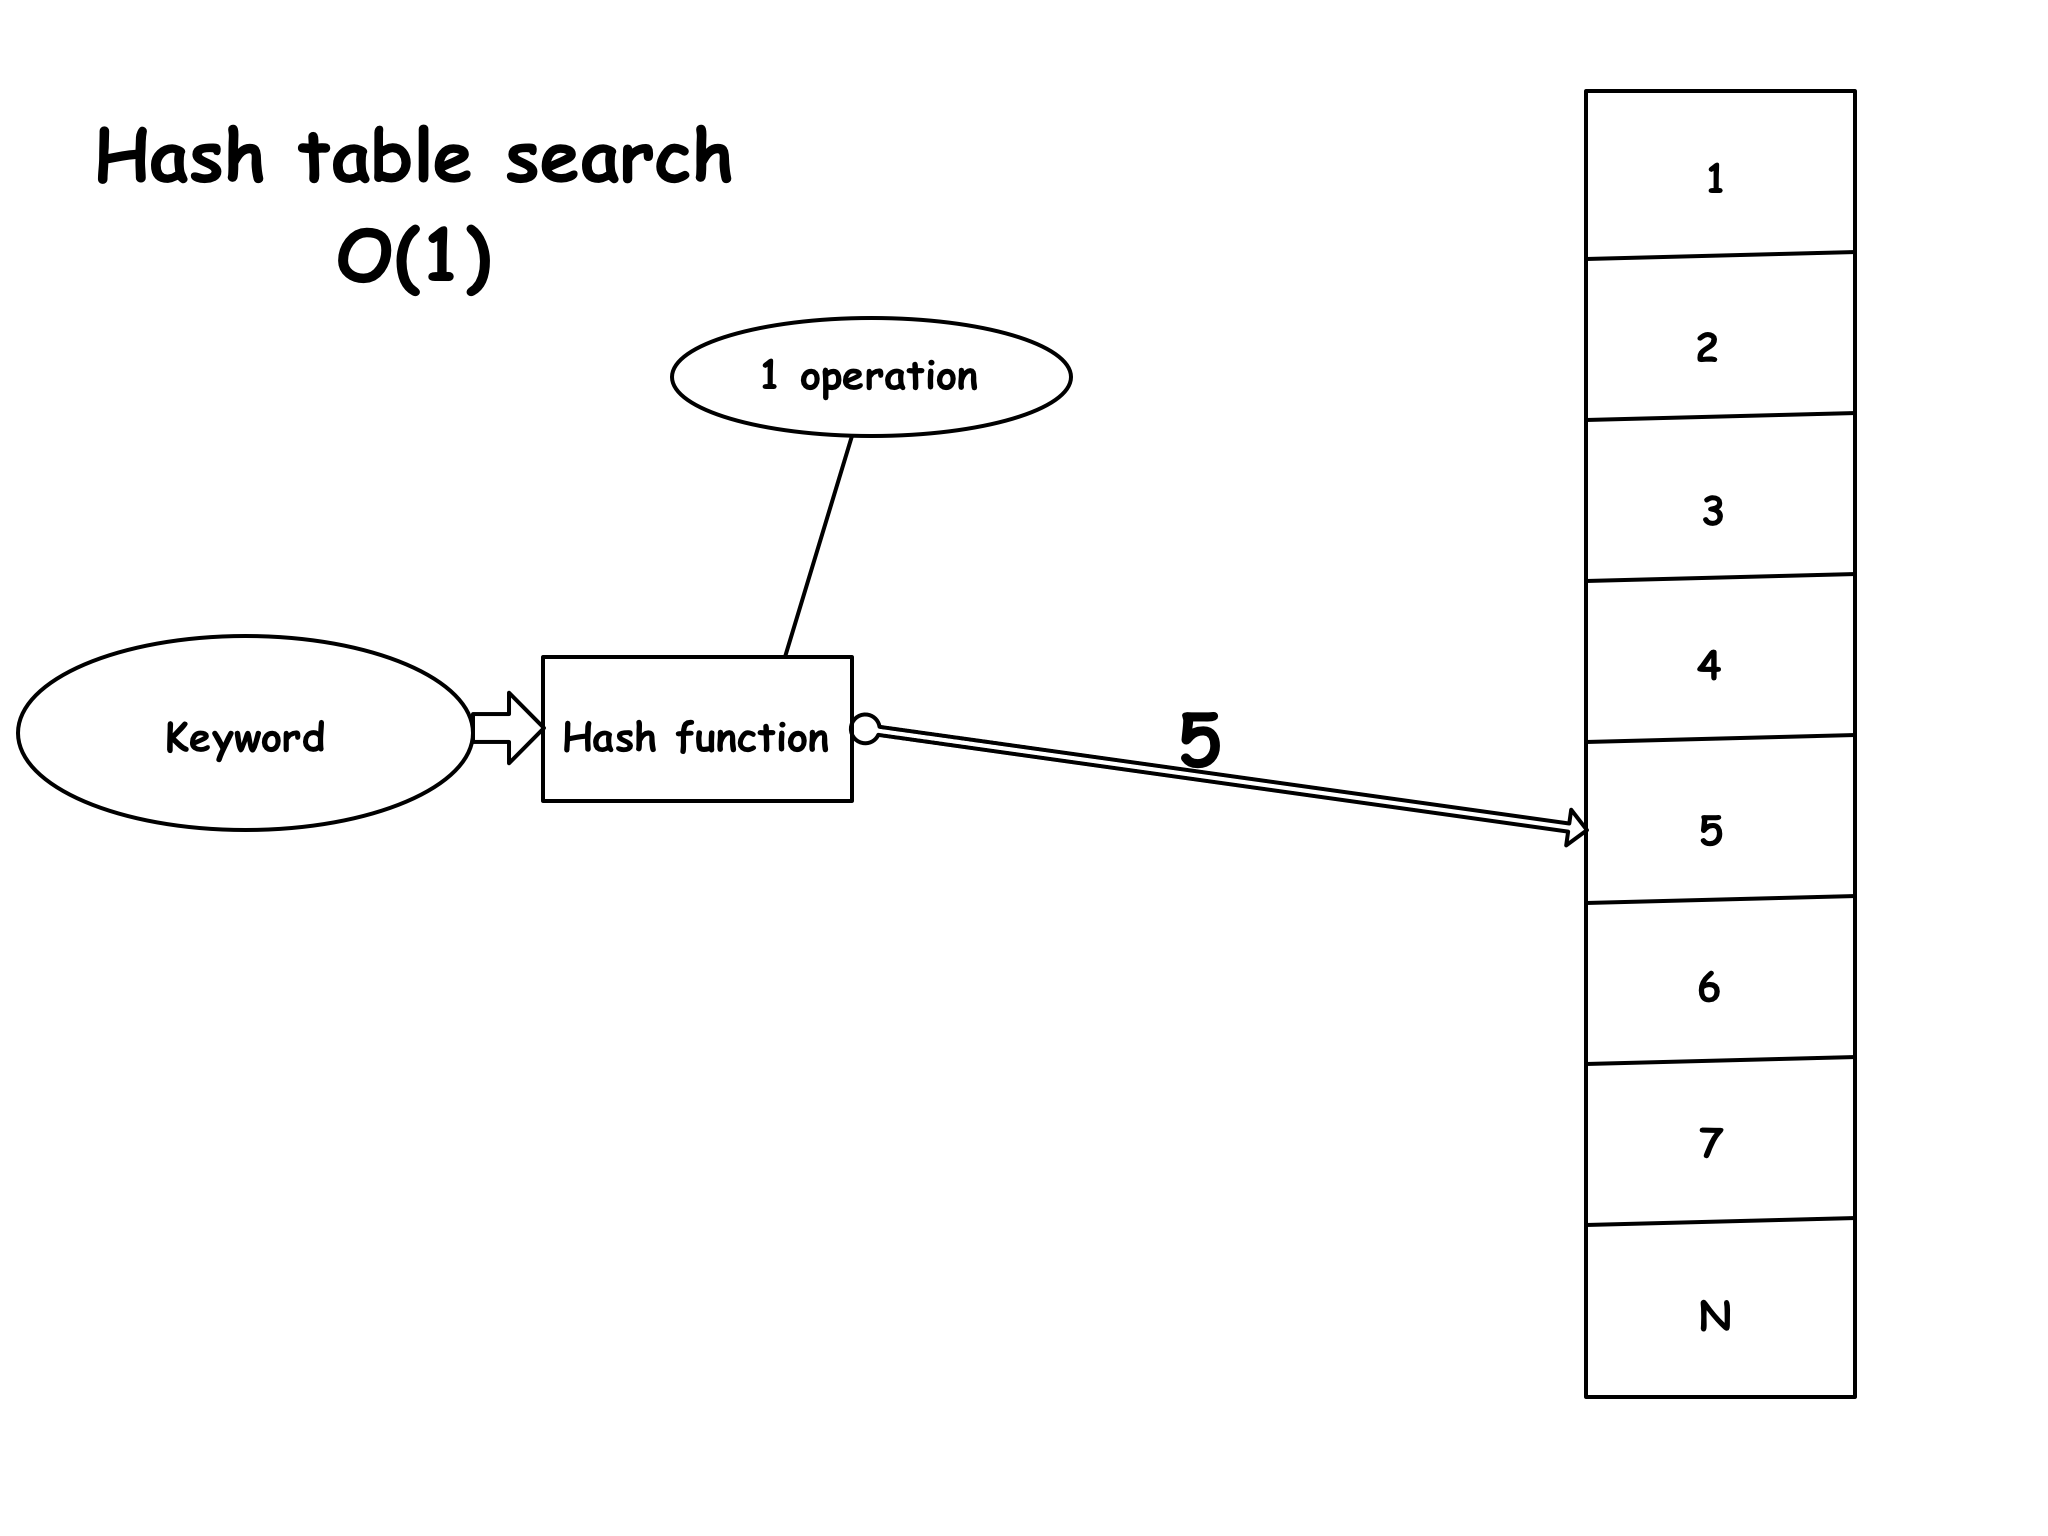 How do hash tables work